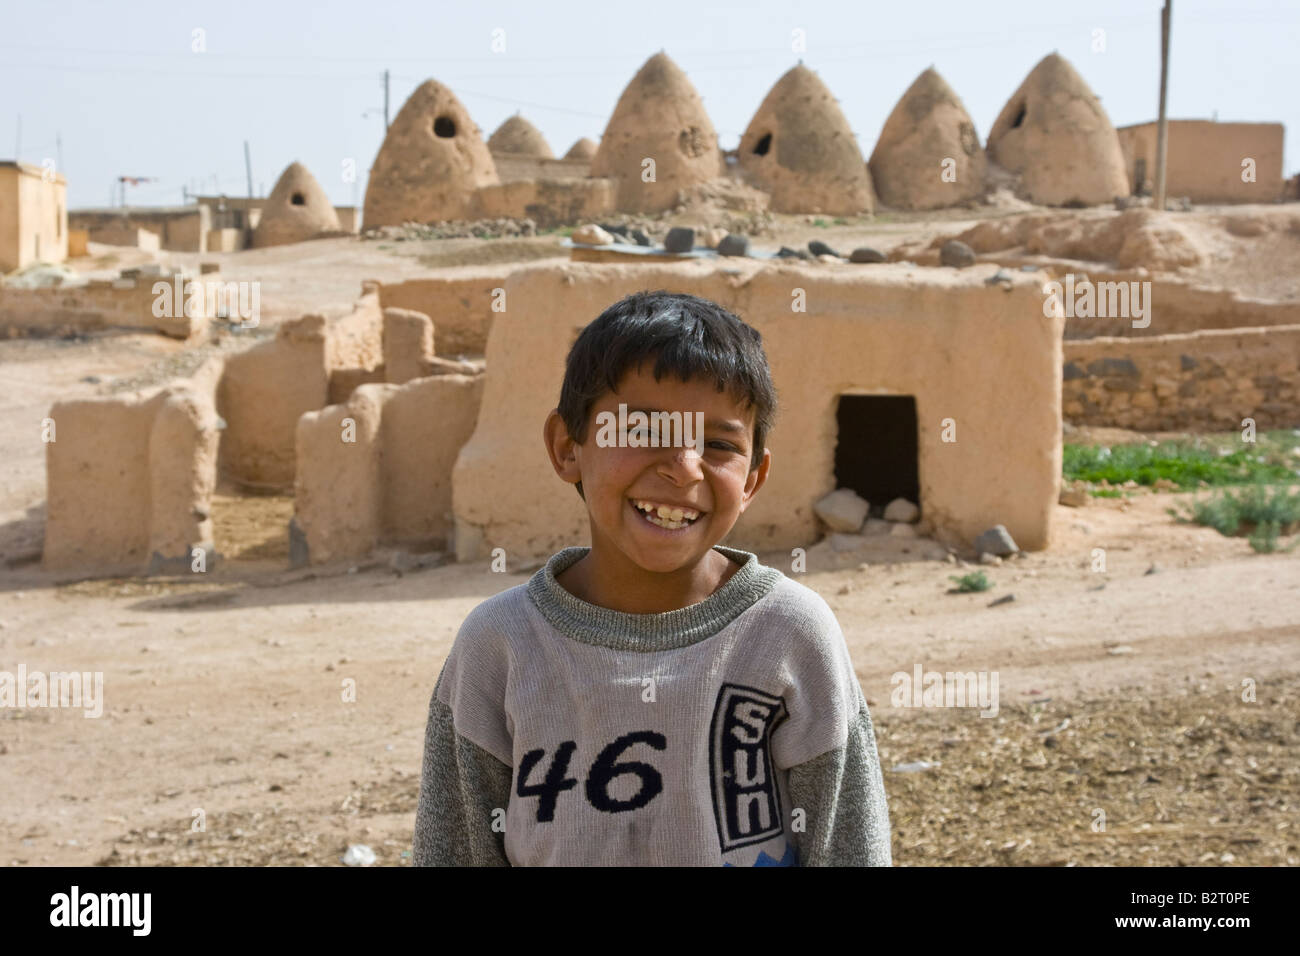 Arab Boy in front of Ancient Beehive Houses in Syria Stock Photo